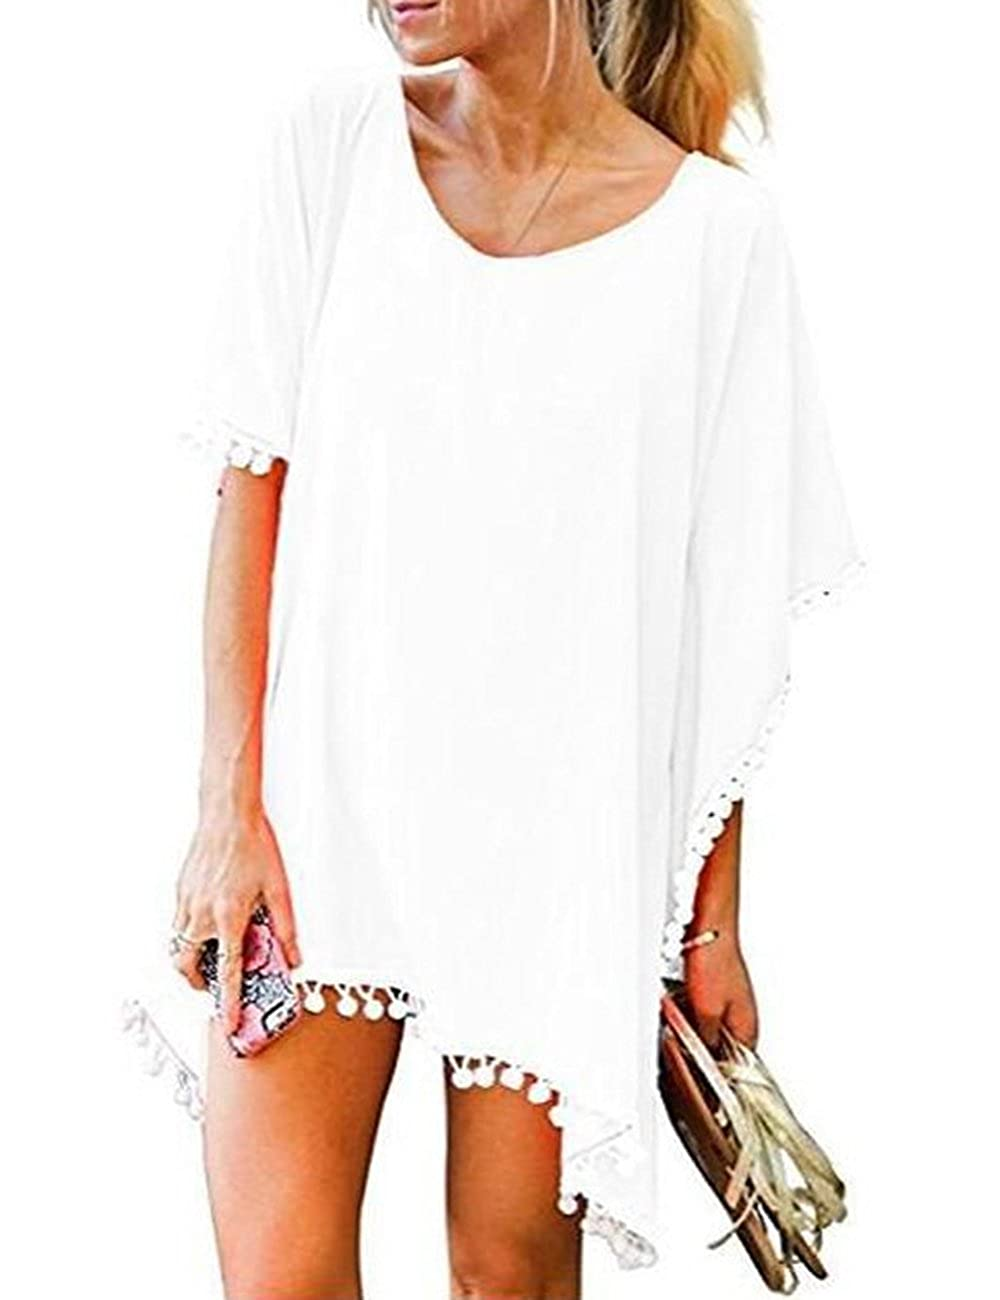 11a9670f87 Women's Pom Pom Trim Kaftan Chiffon Swimwear Beach Cover up Bathing Suit  Swimwear Bikini Swimsuit Beachwear Dress Shirt at Amazon Women's Clothing  store: